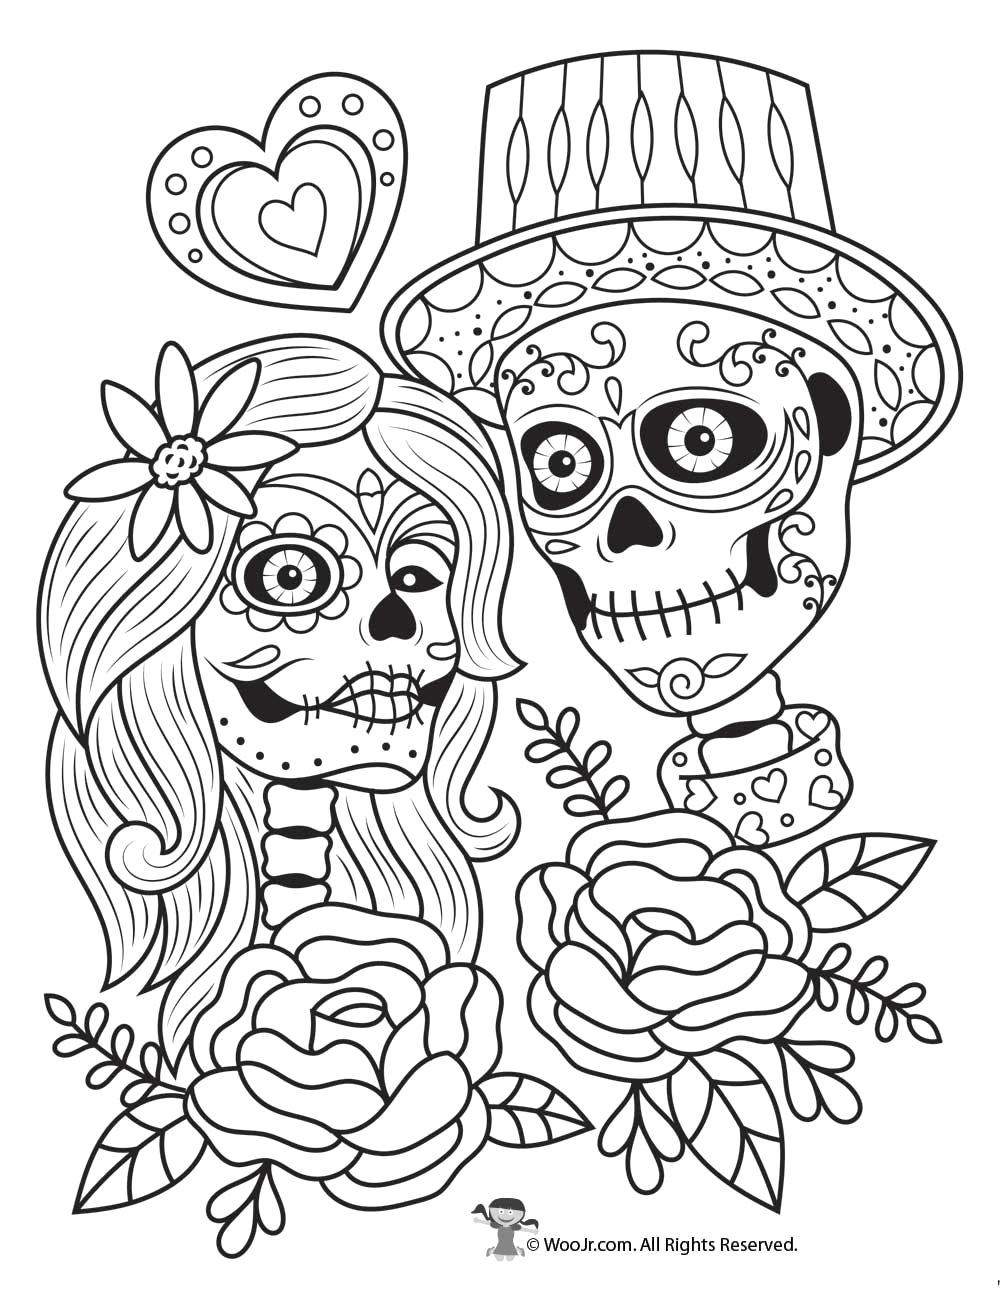 Dia De Los Muertos Couple Coloring Pages Day the Dead Coloring Pages to Print Workberdubeat